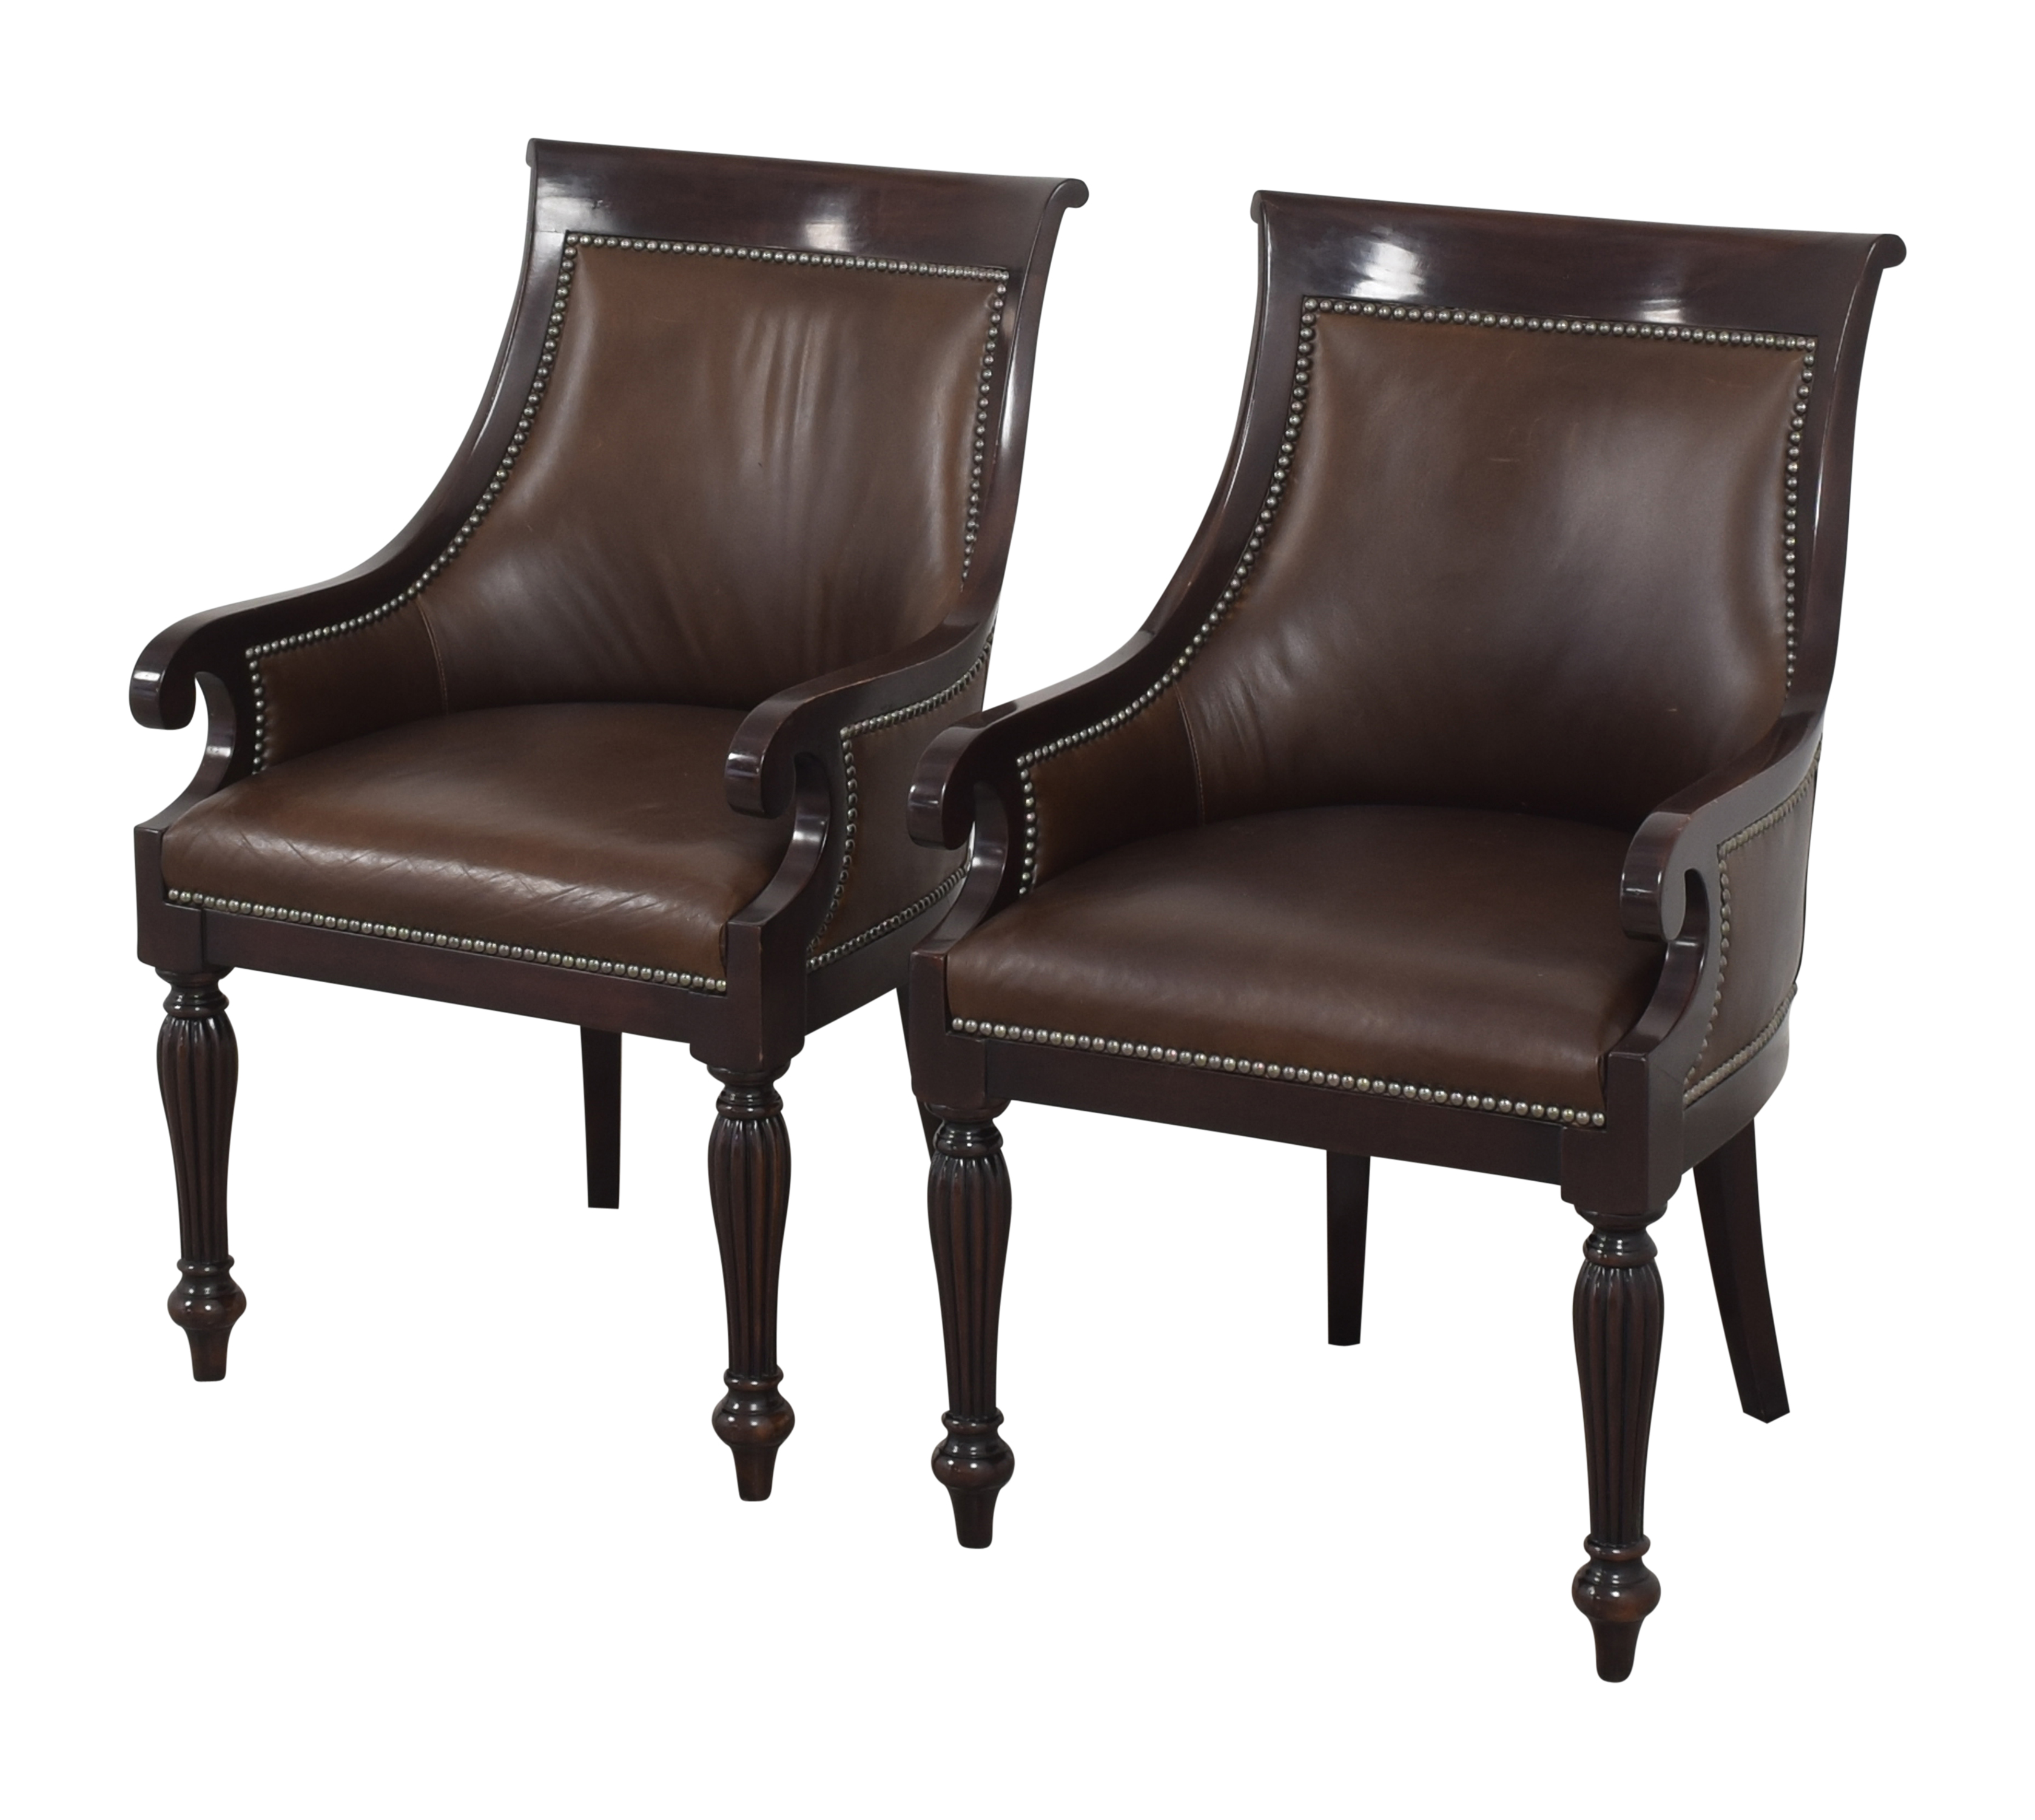 Ralph Lauren Home Ralph Lauren Home East Grand Dining Arm Chairs for sale